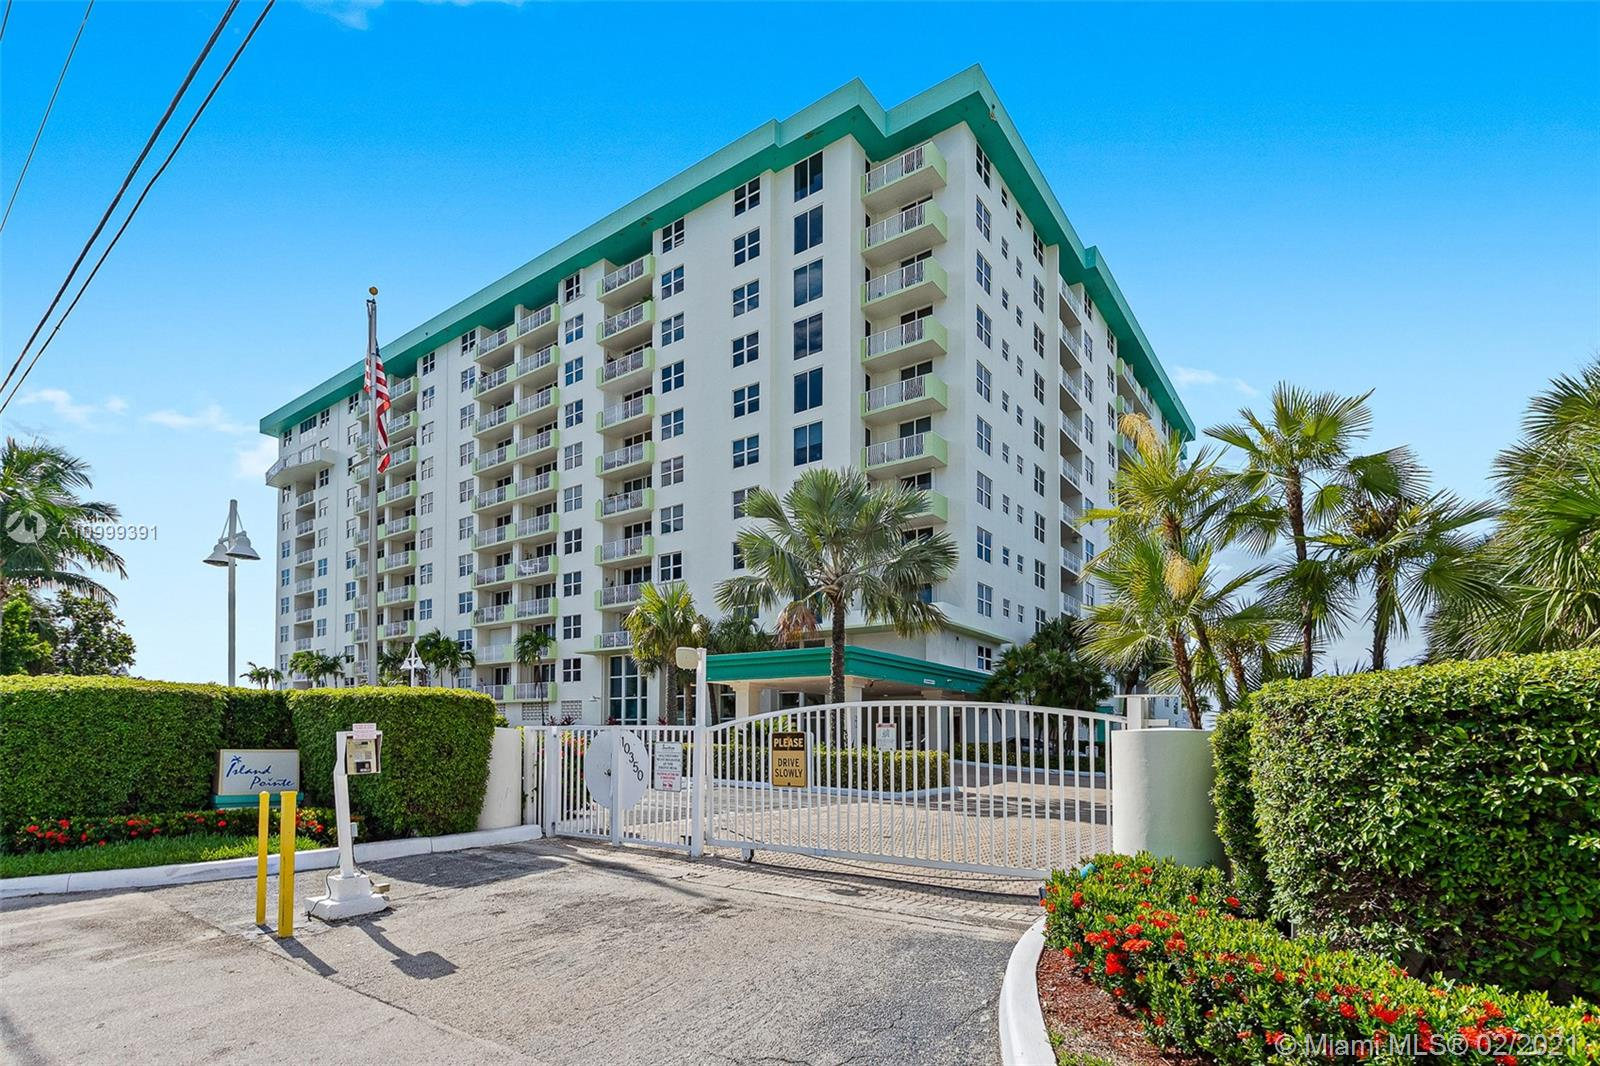 1/1 Best priced unit at island pointe, Live the bay harbor island lifestyle, Unit features, tile floors throughout, large kitchen, Washer and dryer , Nice balcony overlooking Bay Harbor and partial  Bay view ,  24 hour  doorman, pool, gym..  Need 24 hour notice !